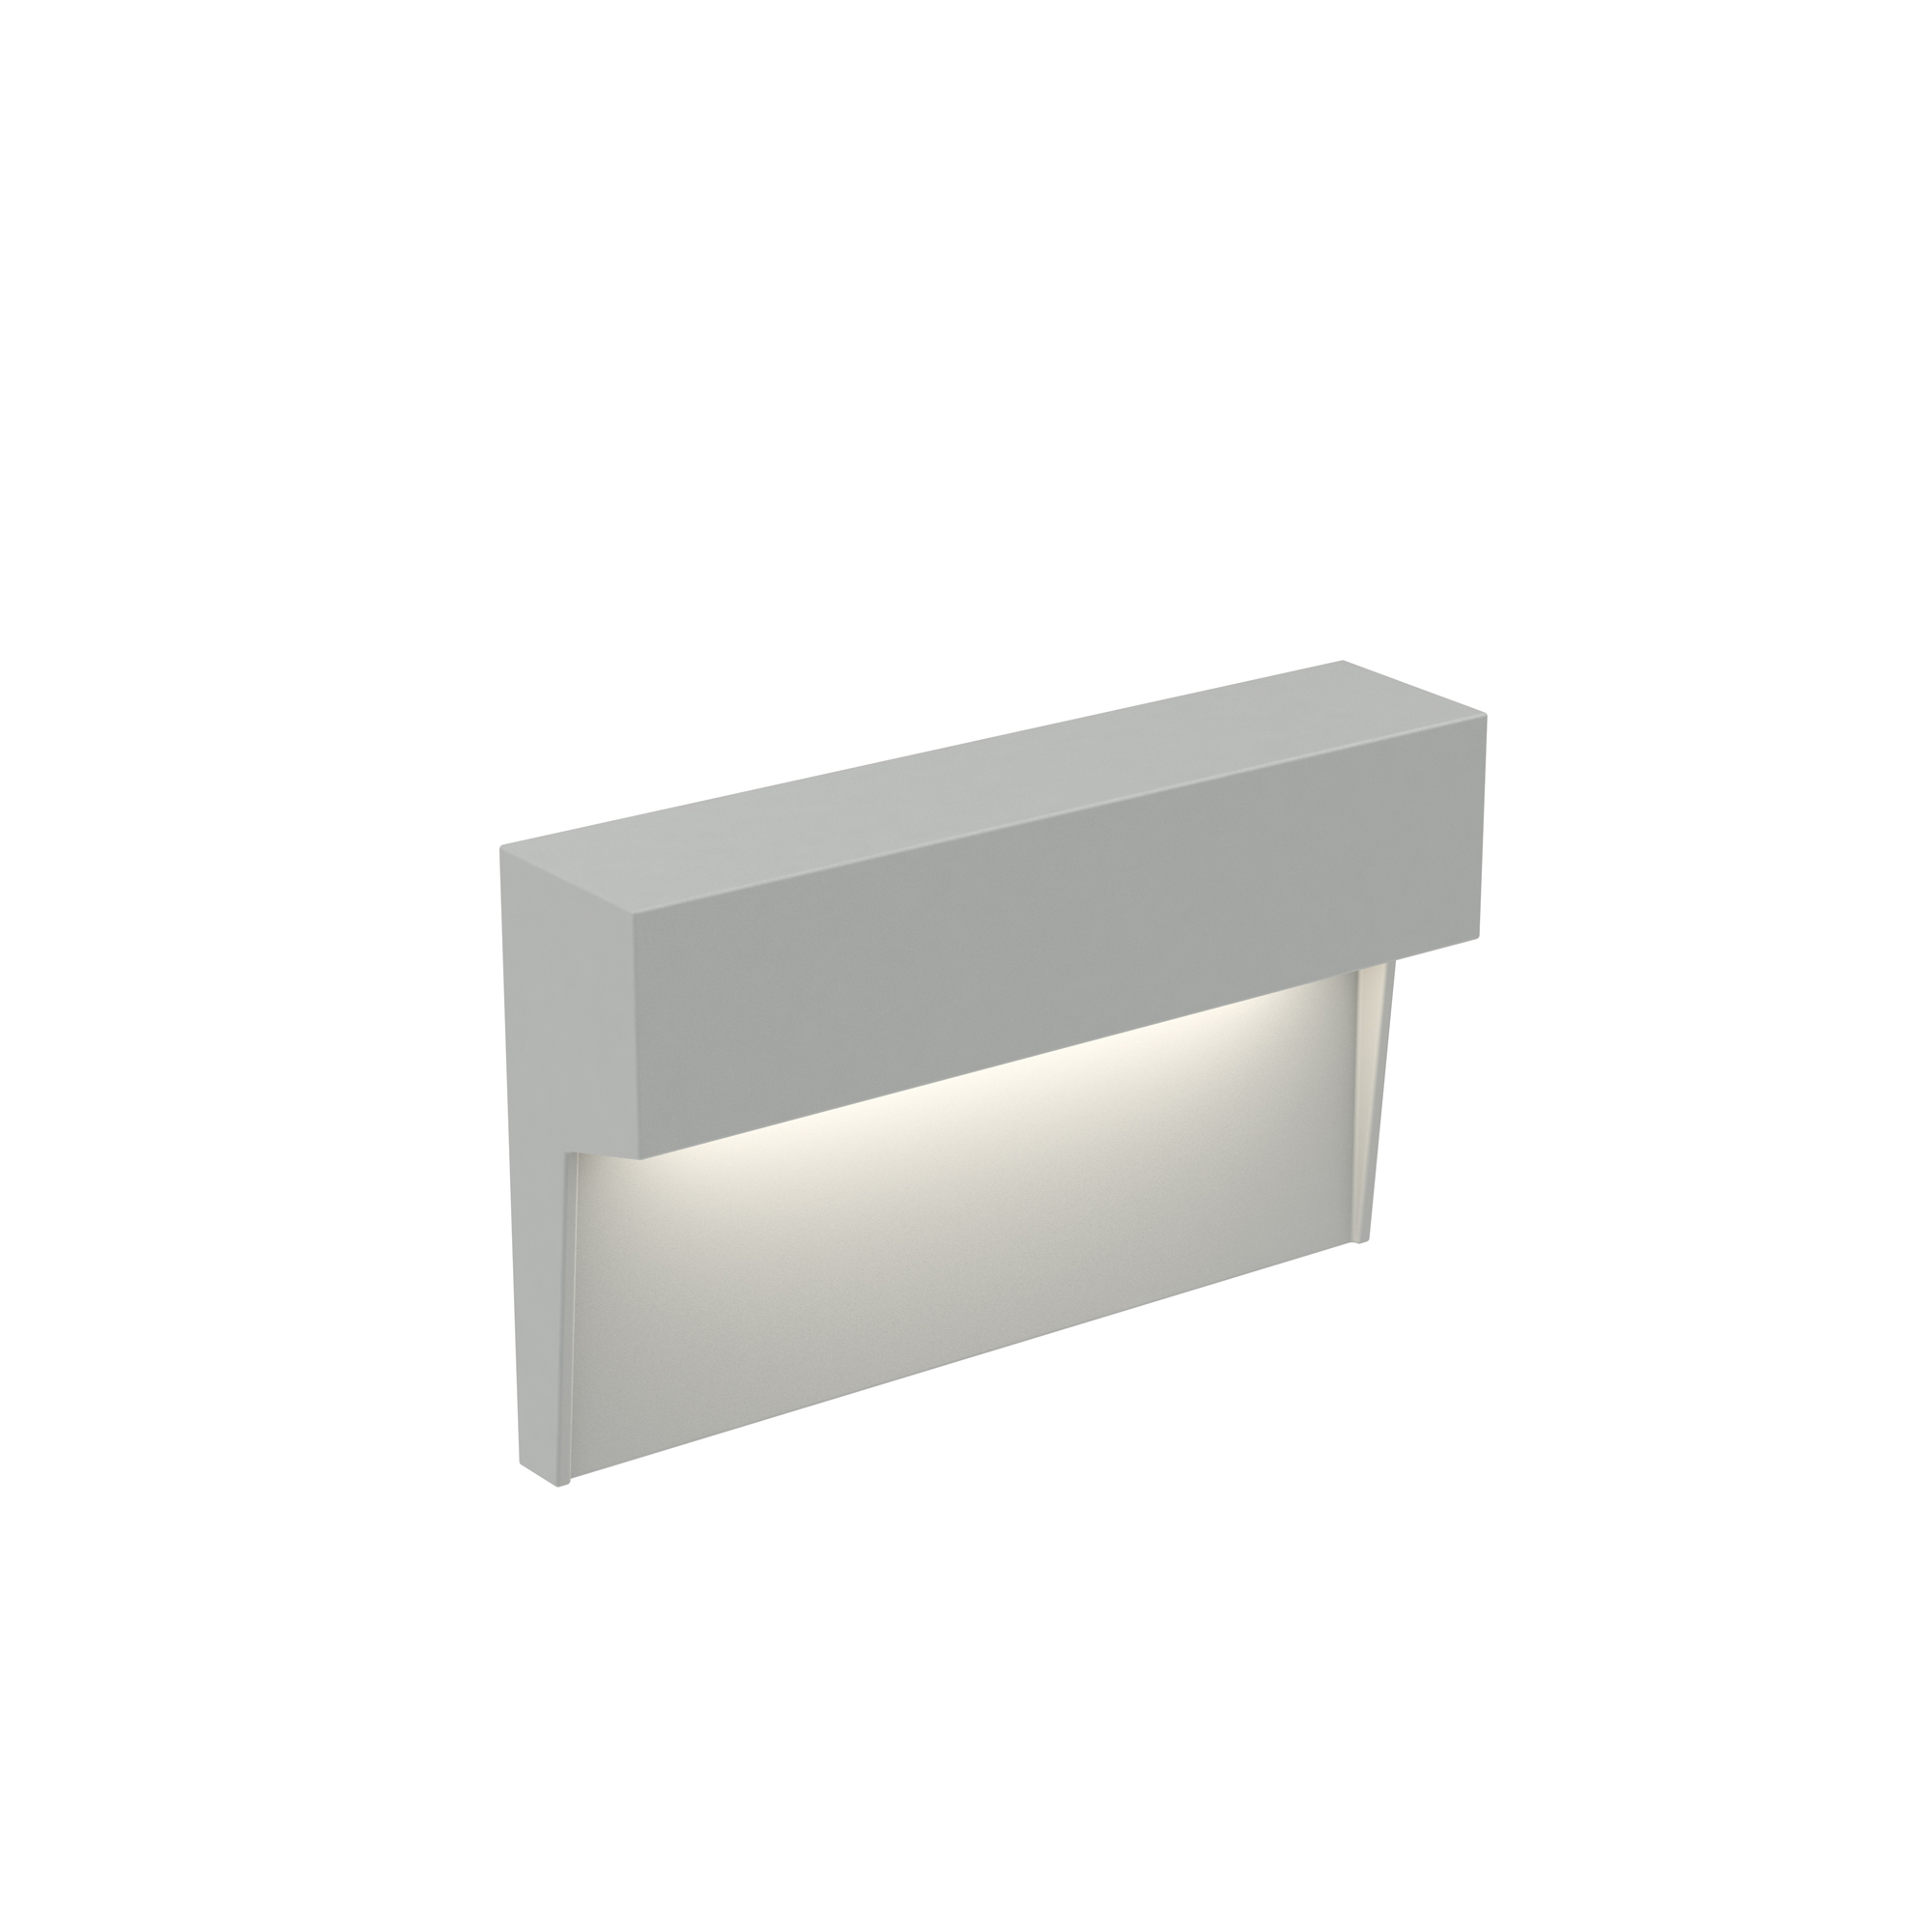 LEDSTEP001D - Horizontal LED step light